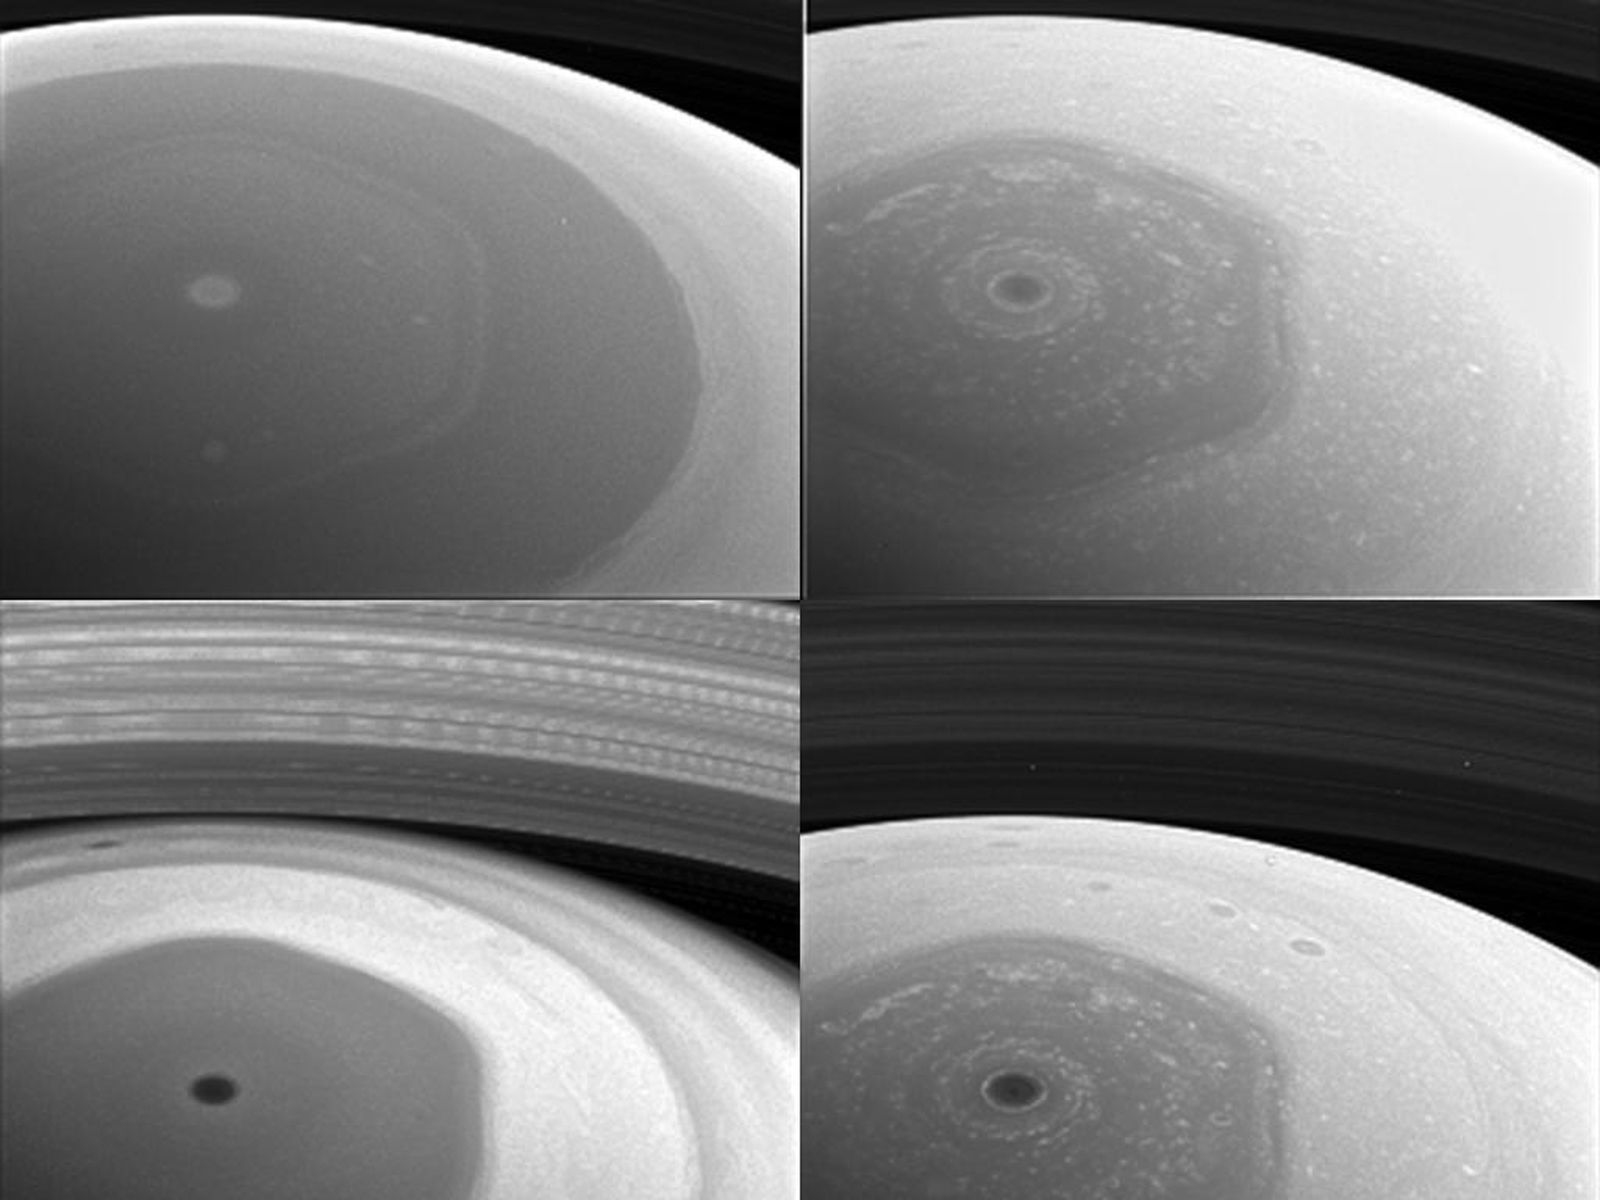 This collage of images from NASA's Cassini spacecraft shows Saturn's northern hemisphere and rings as viewed with four different spectral filters.